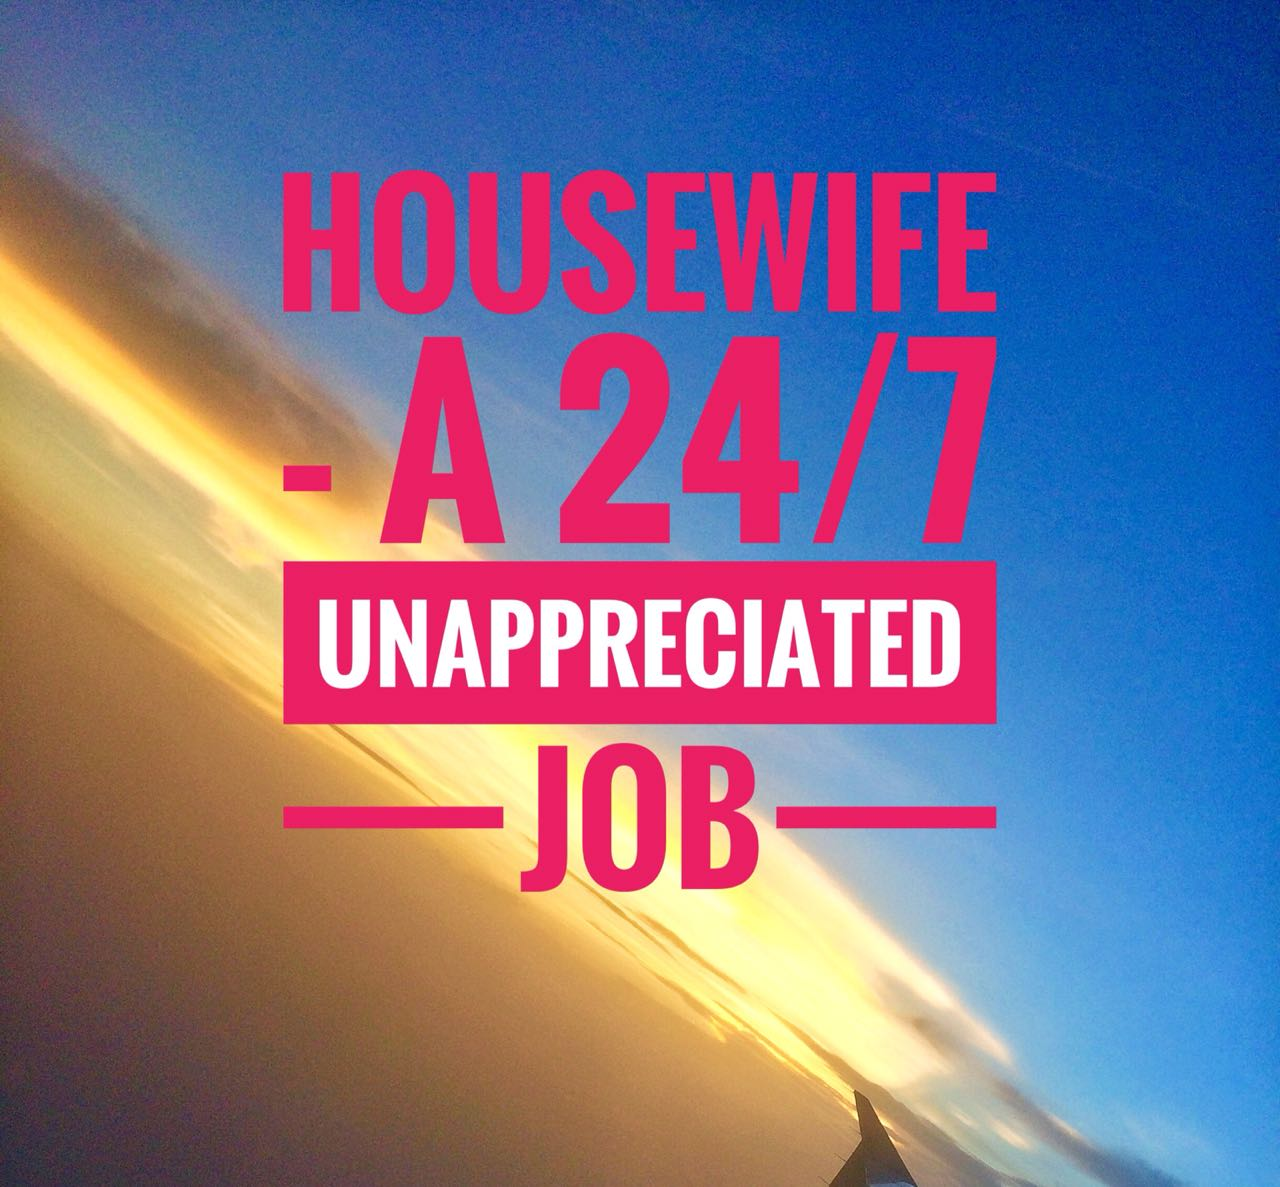 Poonzworld-HOUSEWIFE - An Unappreciated 24/7 Job